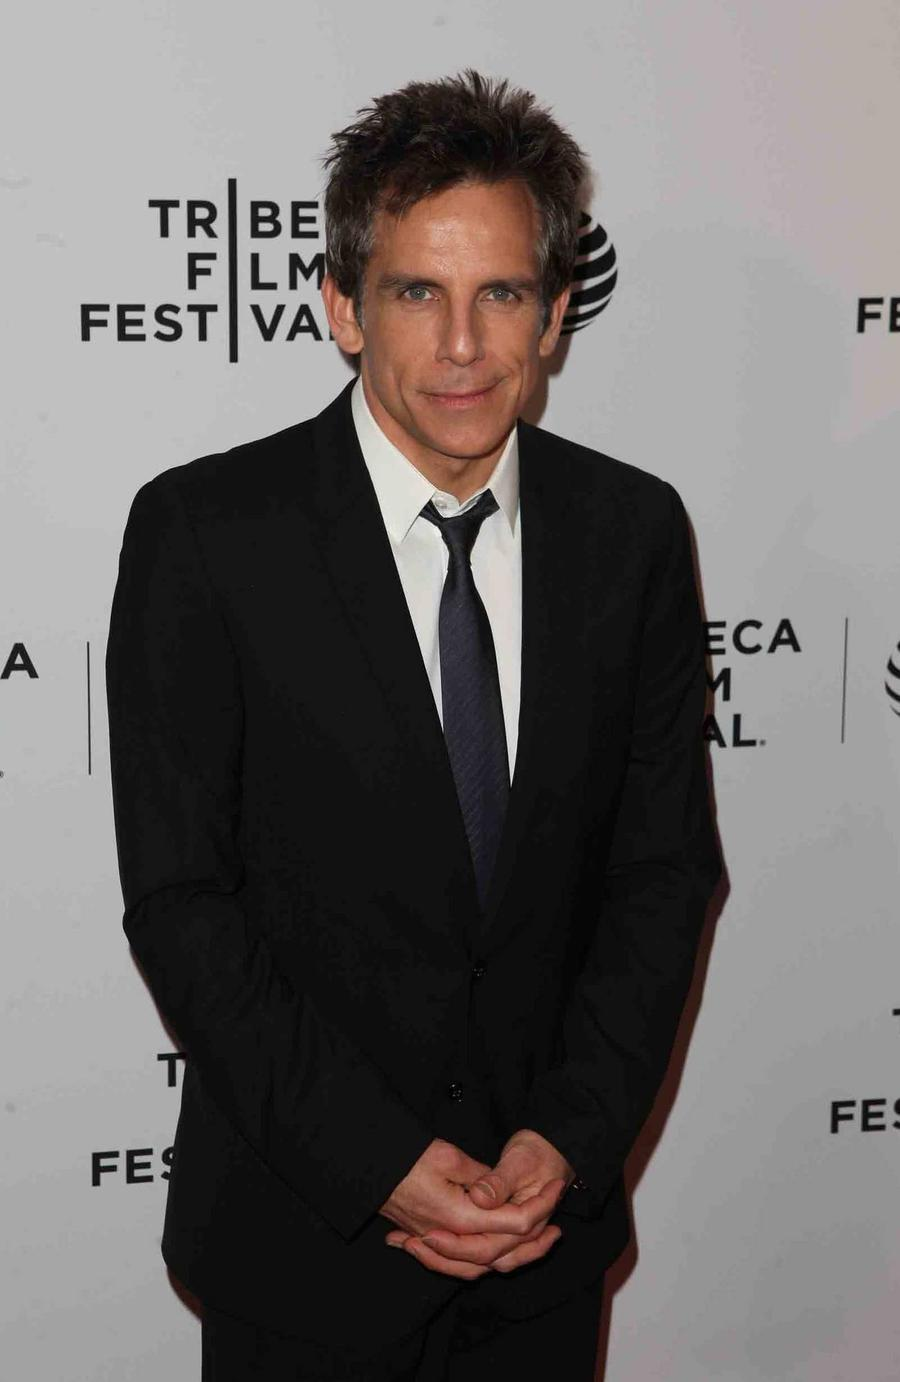 Ben Stiller To Star In Comedy Brad'S Status